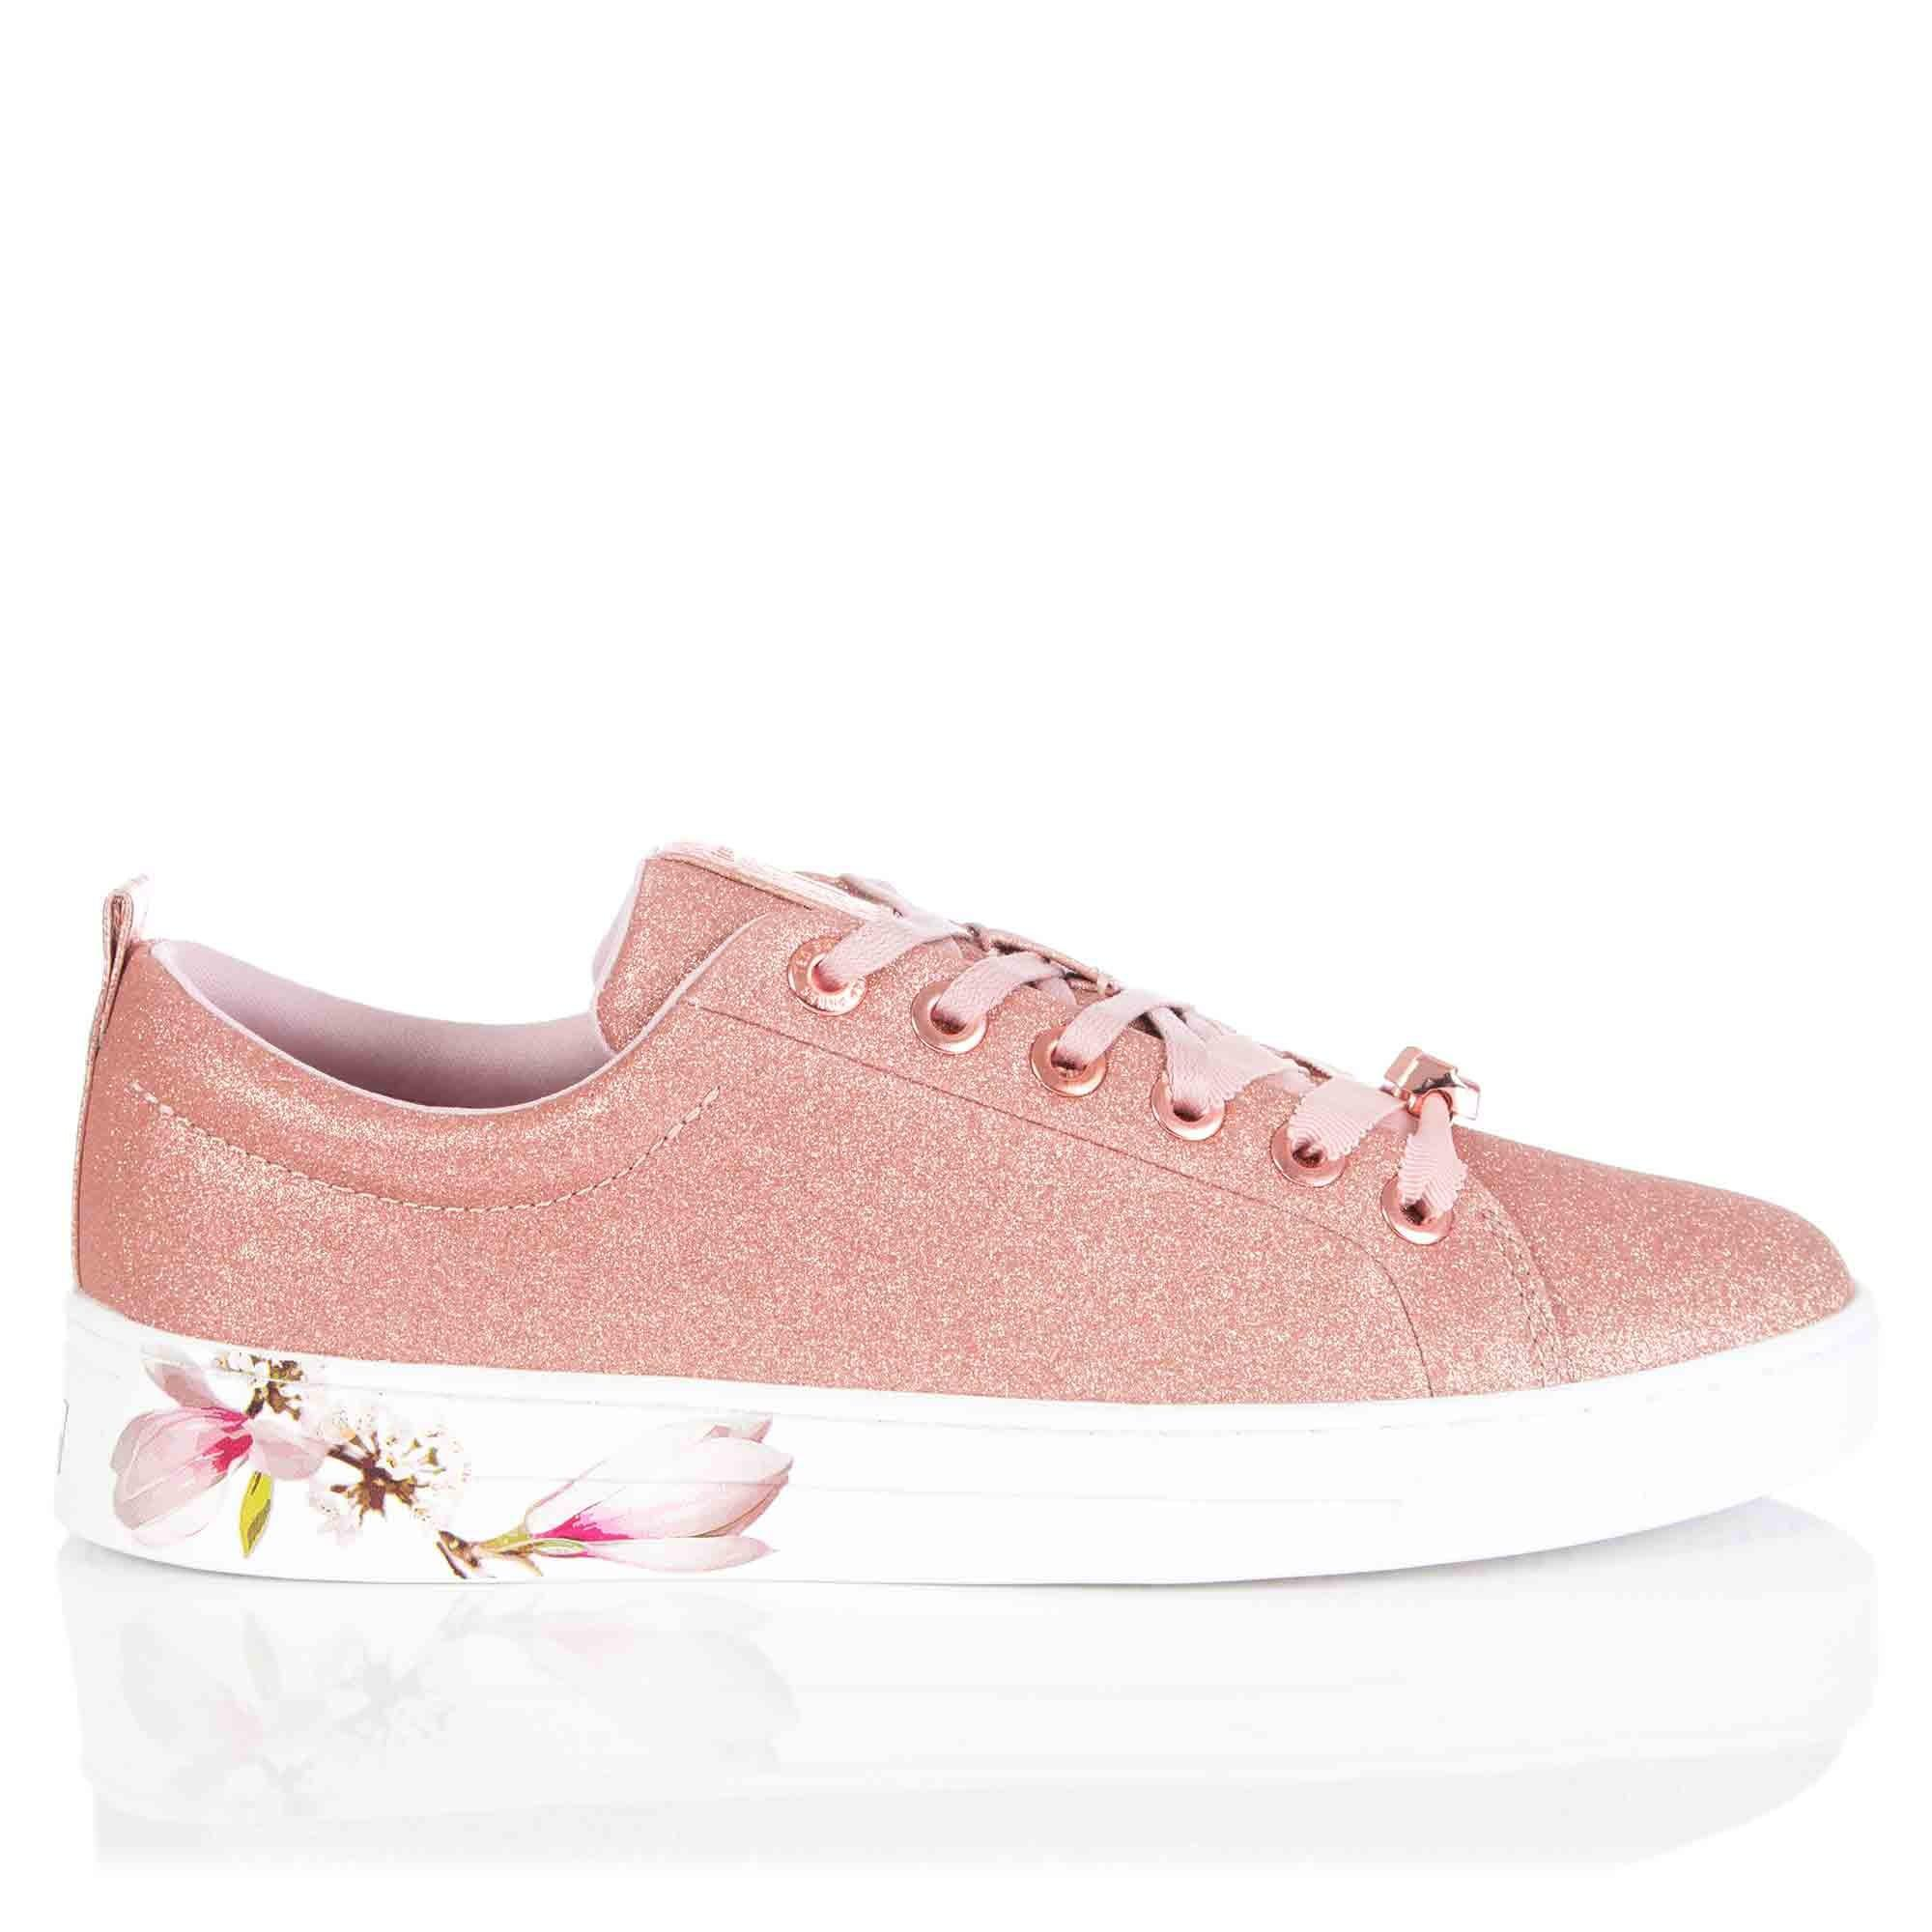 e555d8a8e Ted Baker Kelleit Harmony Sneaker In Rose Gold in Pink - Lyst